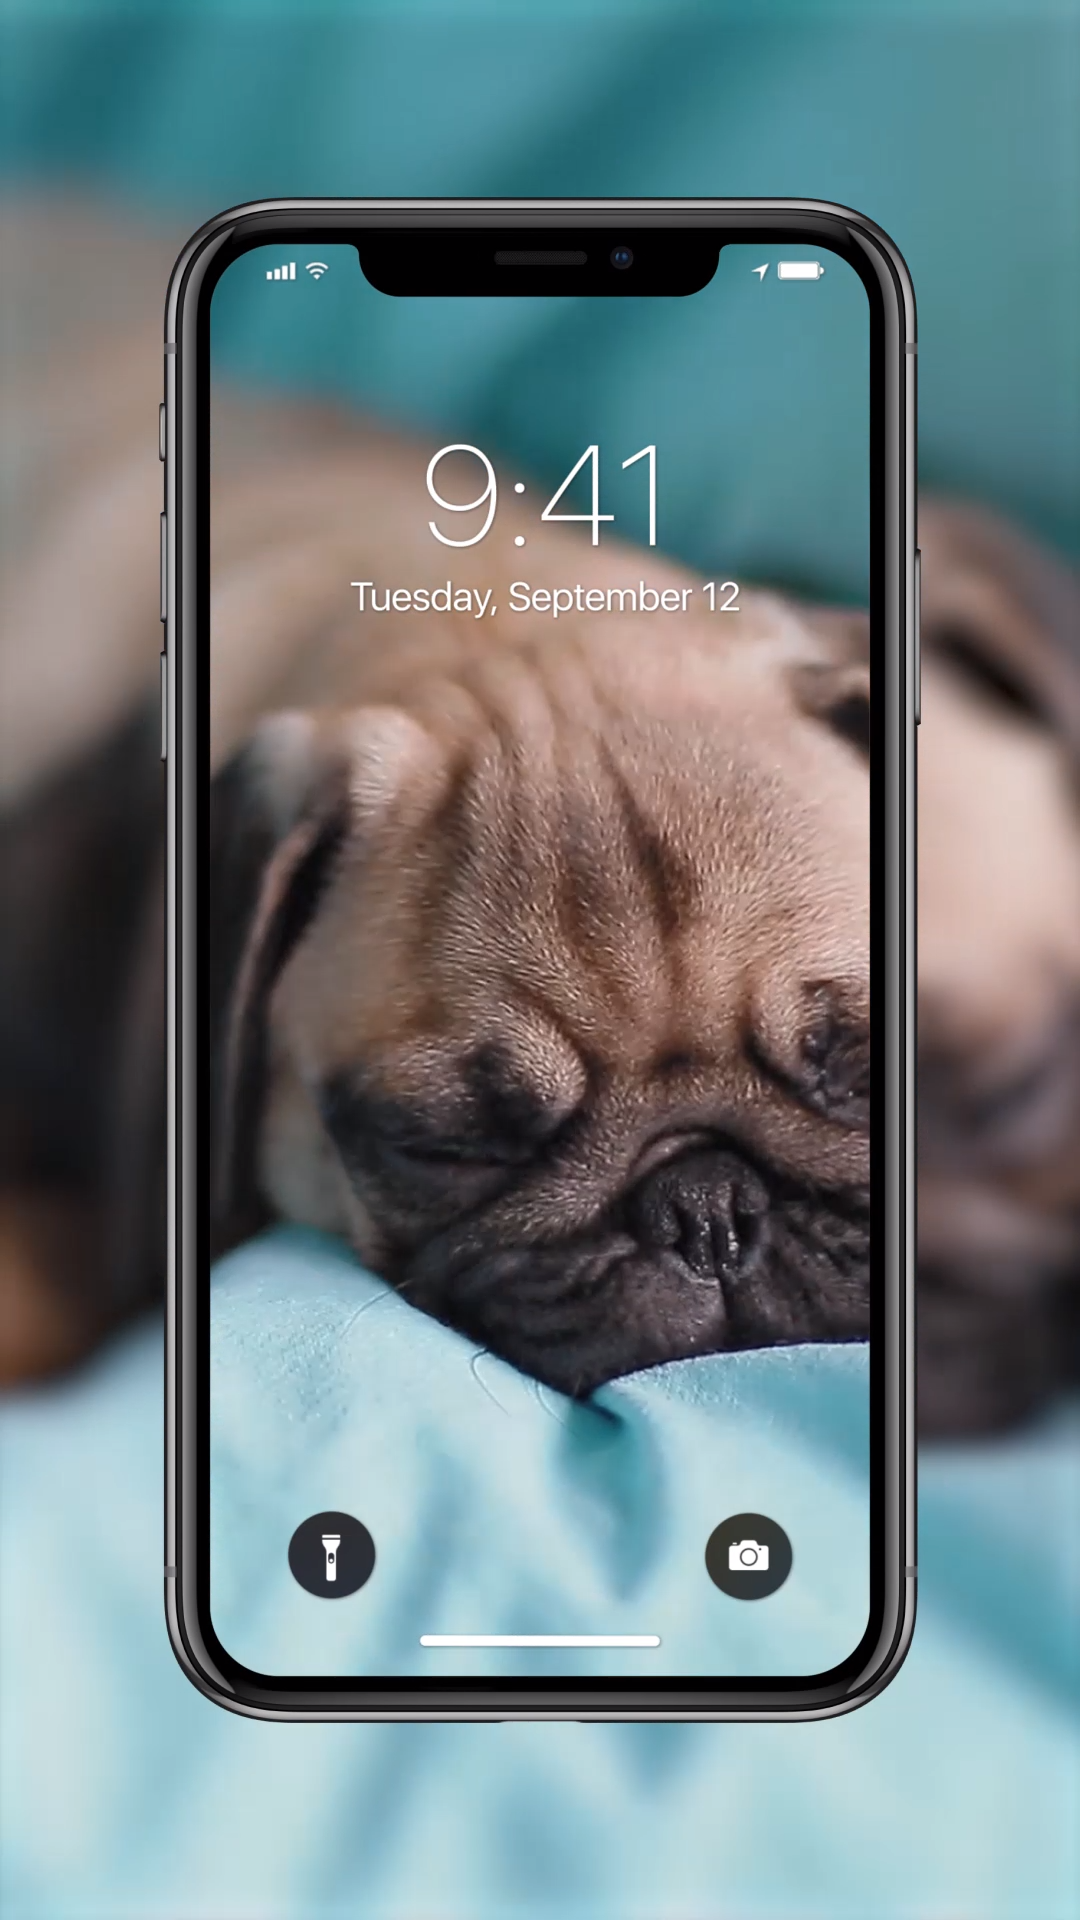 Incredible Live #Wallpapers for your iPhone!